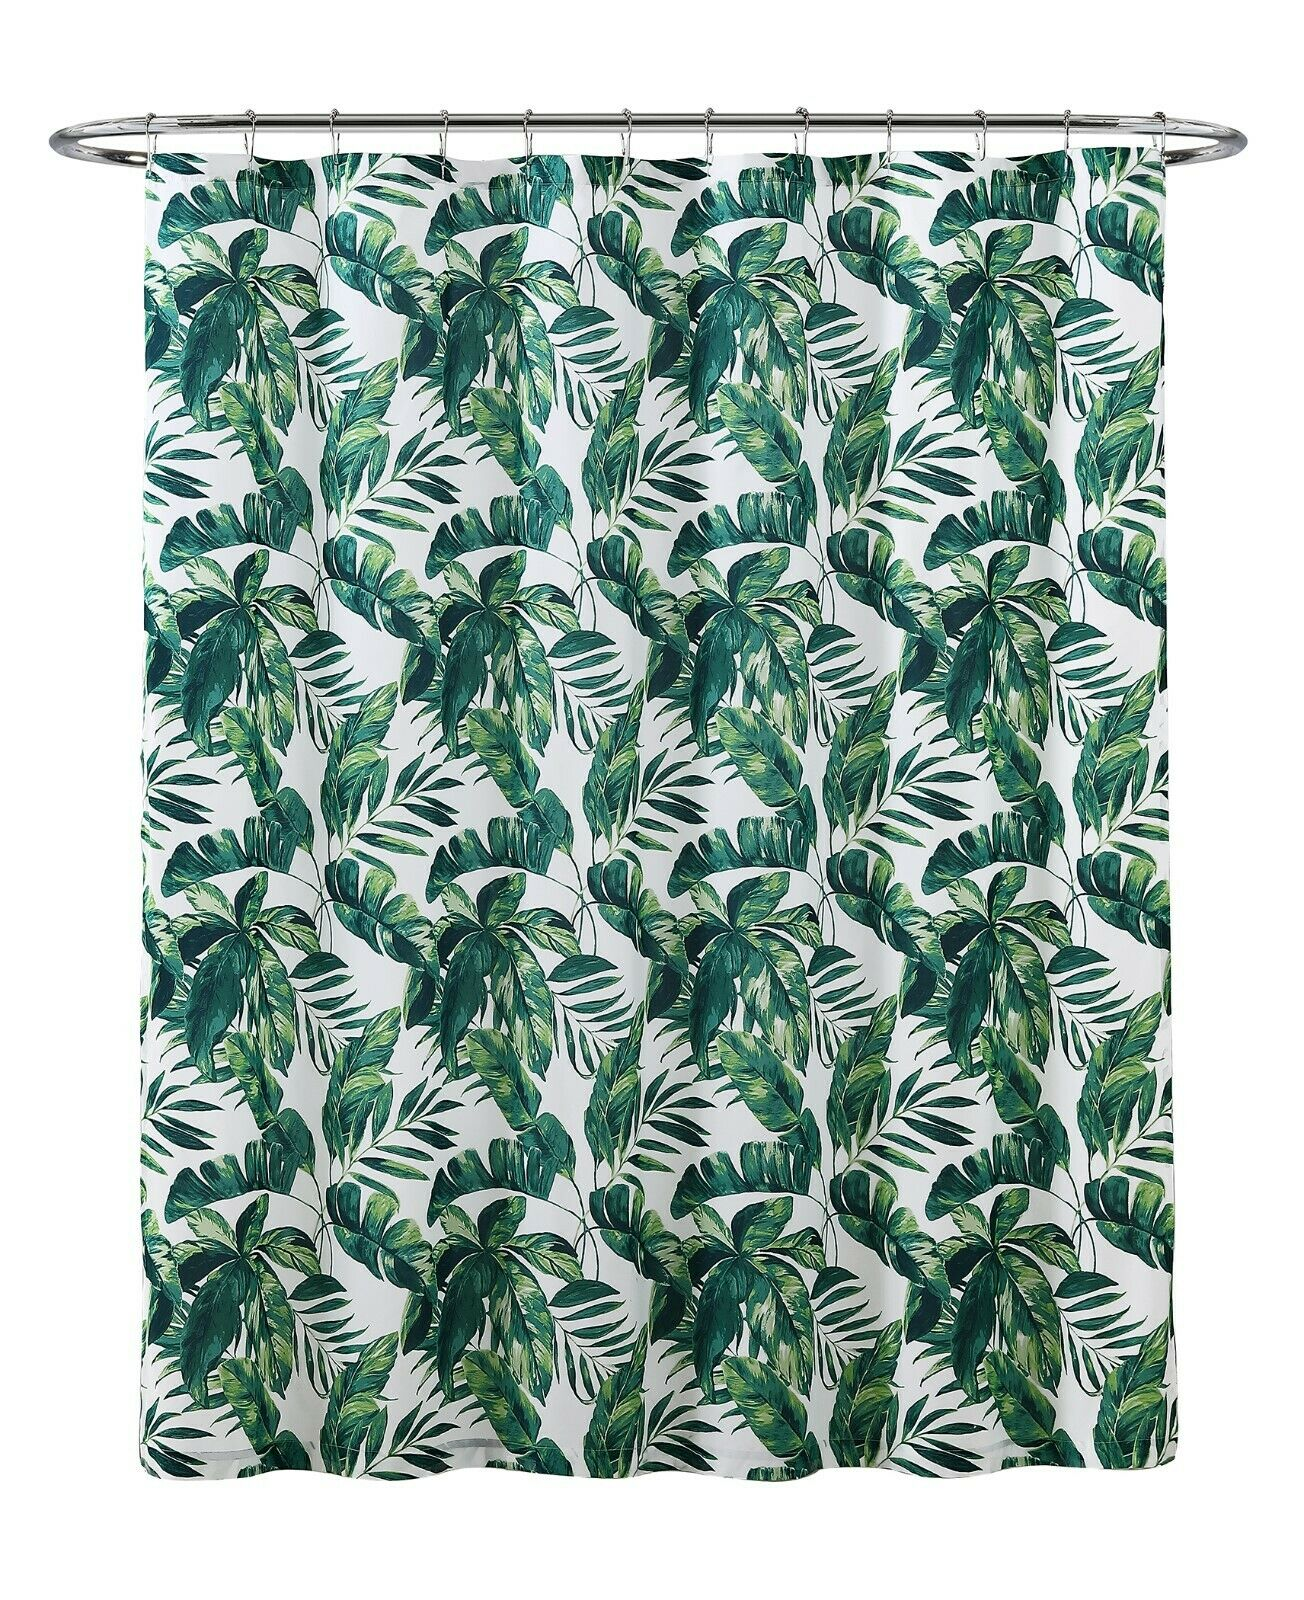 Tropical Palm Leaves Print Fabric Shower Curtain White Green Microfiber Bath New For Sale Online Perfect for digital and perfect to print. ebay